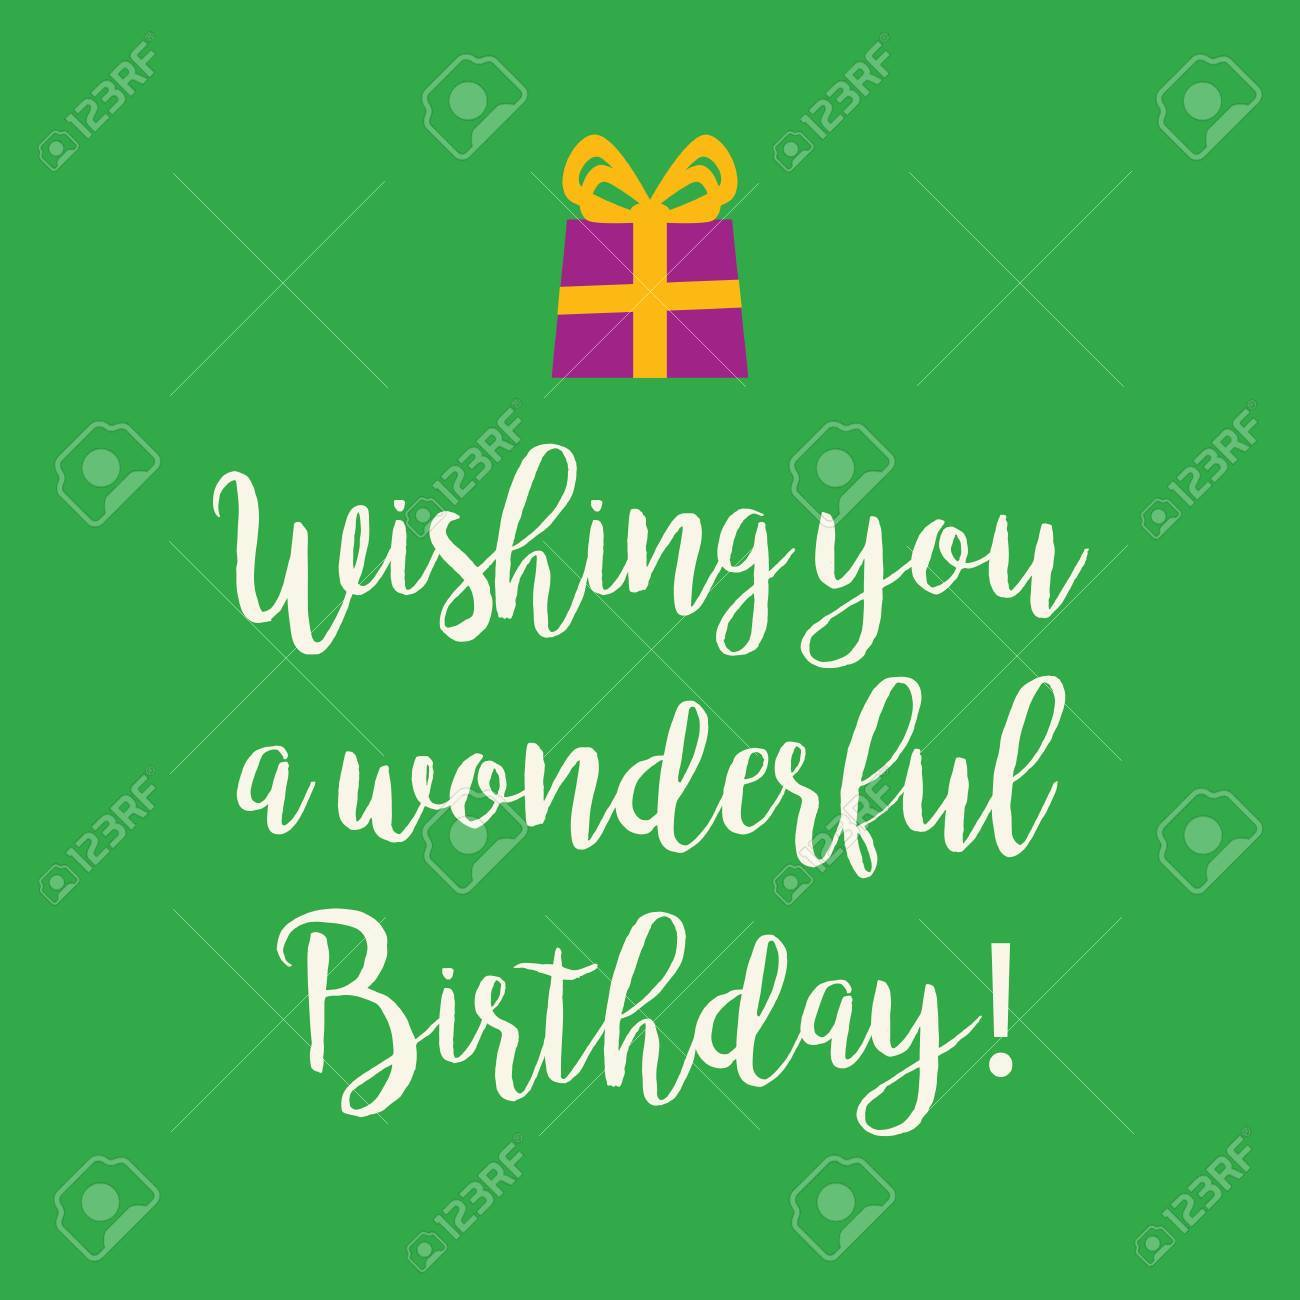 Cute Wishing You A Very Happy Birthday Greeting Card With A Text